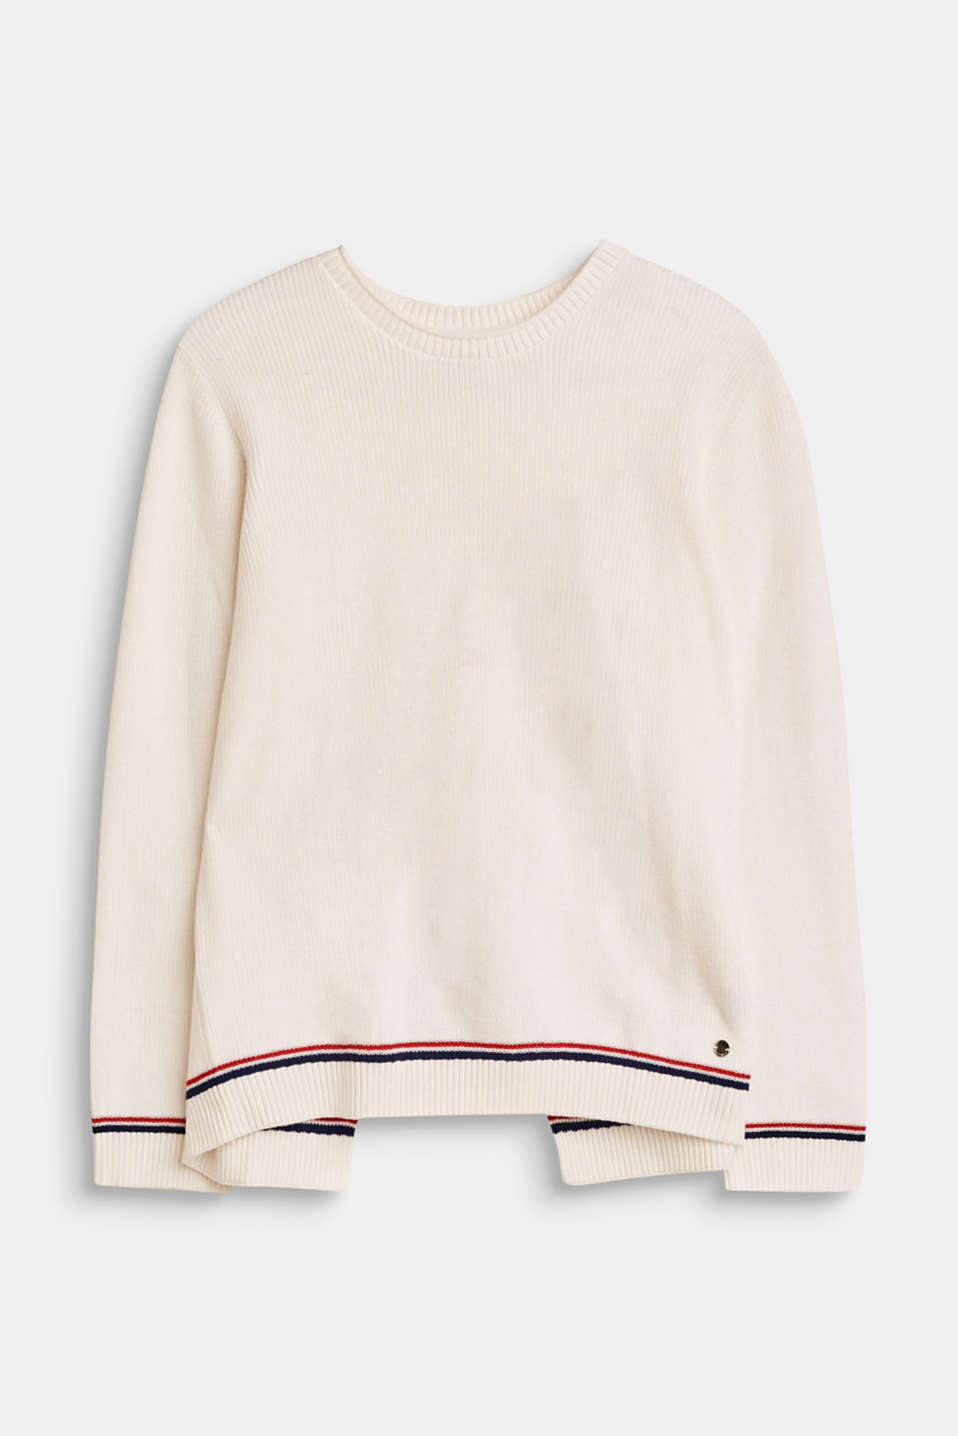 Esprit - Rib knit jumper with a layered back, cotton